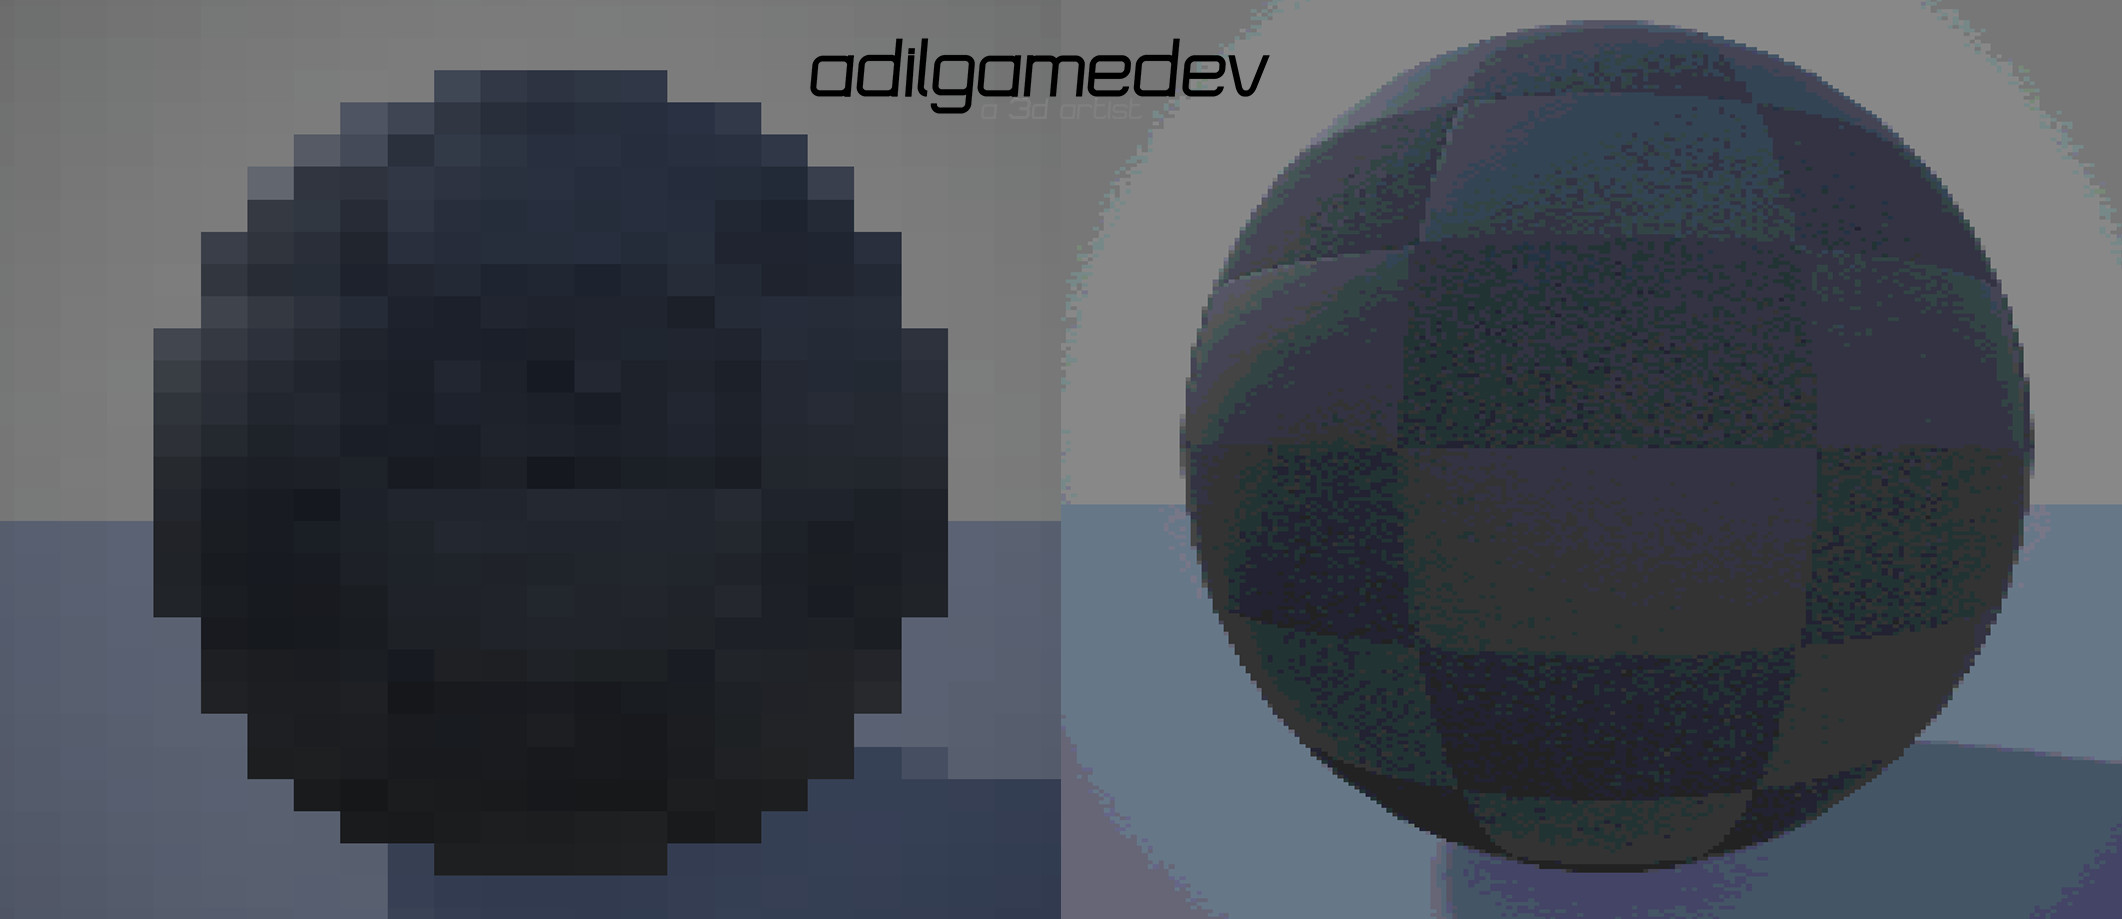 custom shaders used in the project, with them being a pixel shader and a dithering shader to give it a retro effect